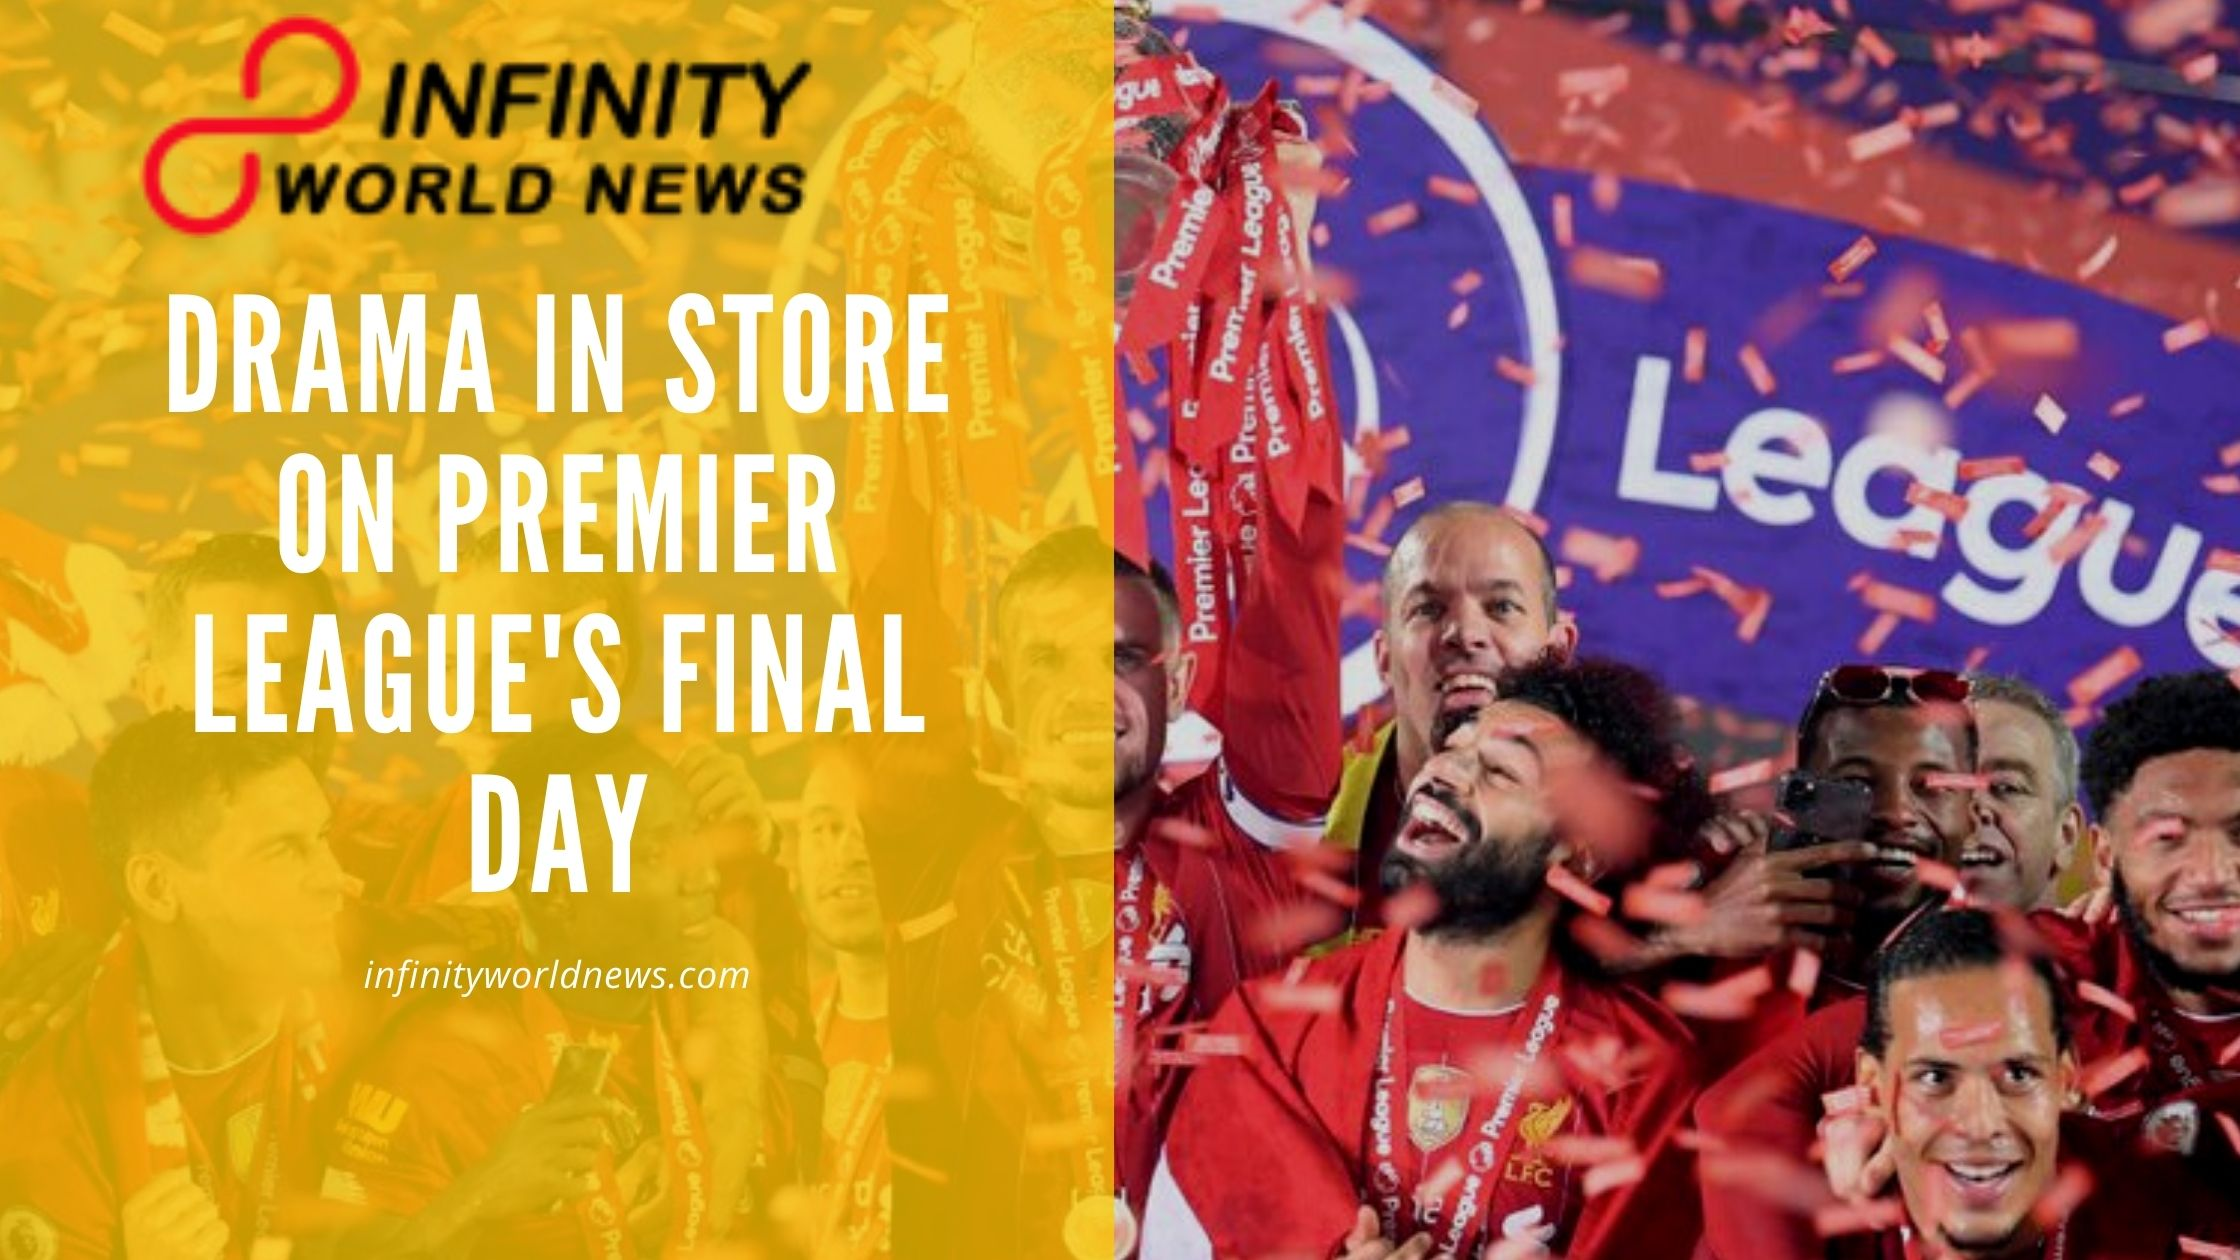 Drama In Store On Premier League's Final Day